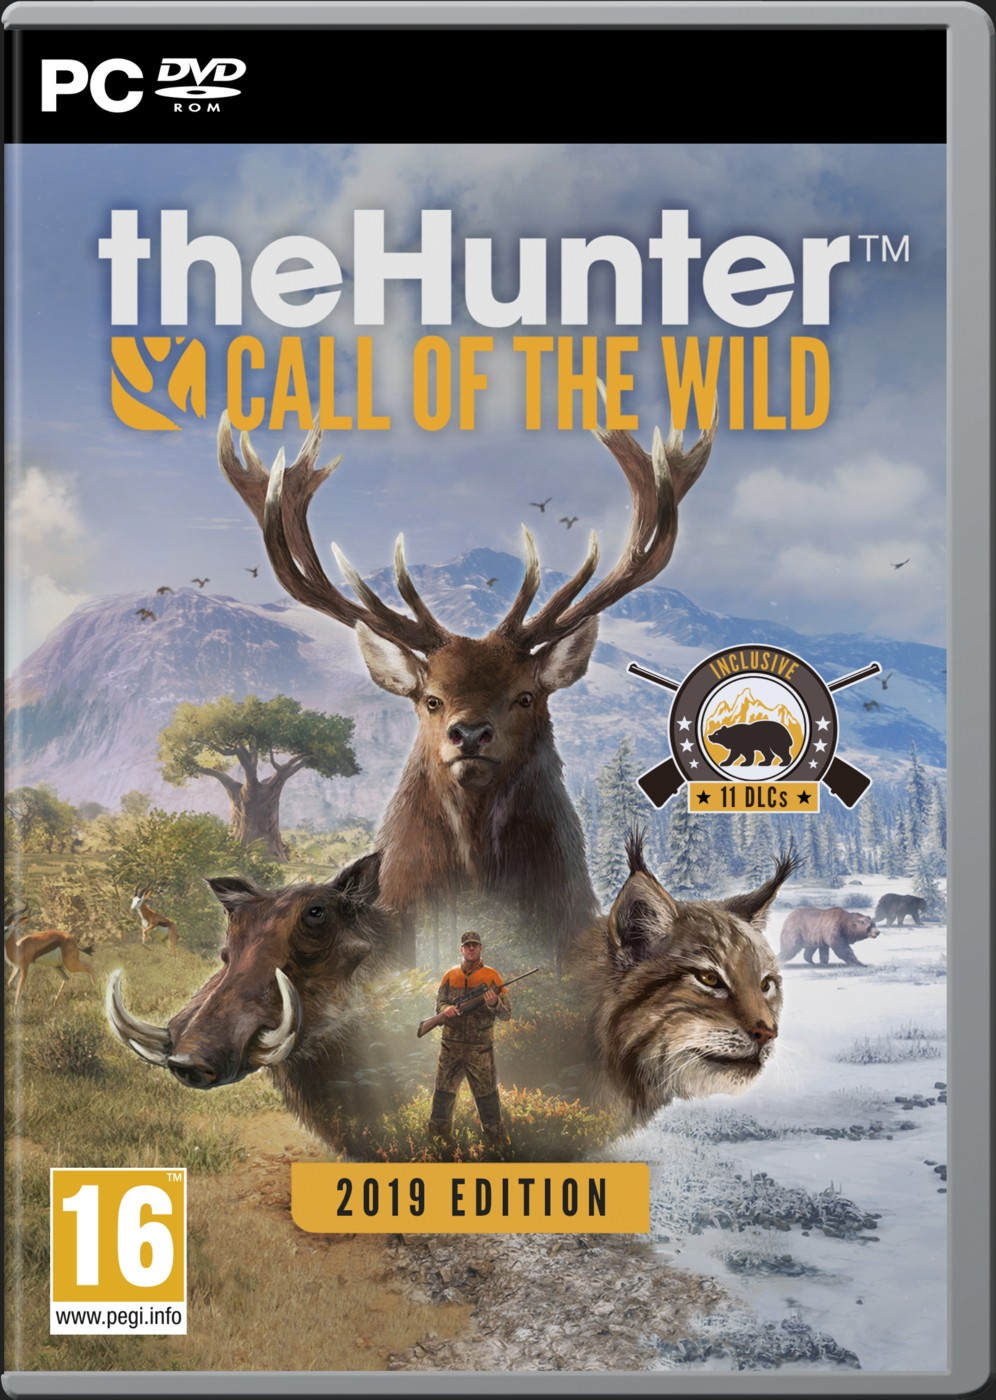 theHunter: Call of the Wild - 2019 Edition - PC